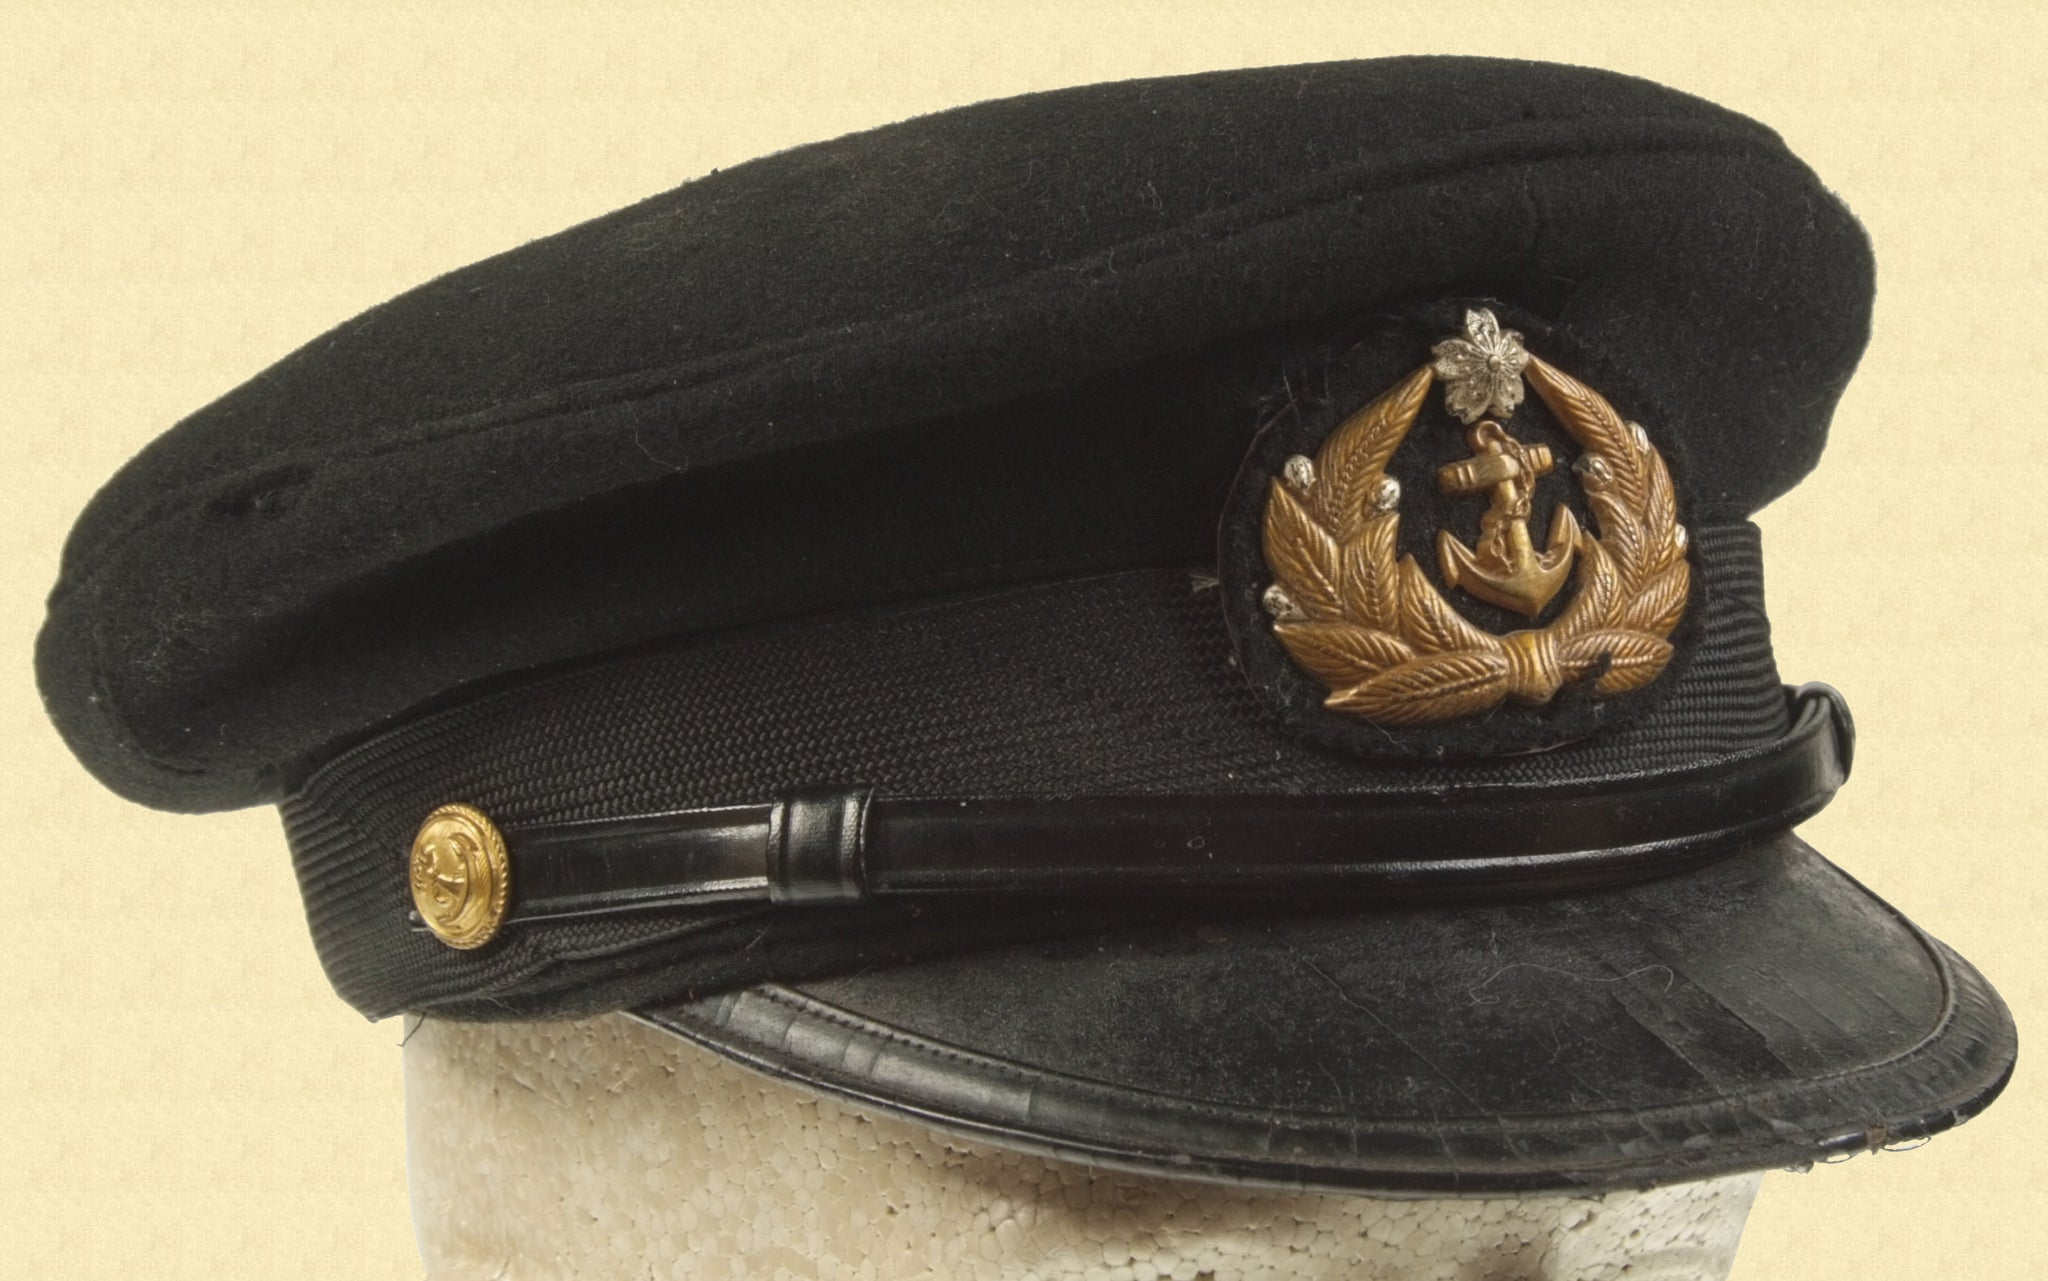 JAPANESE OFFICERS PEAKED HAT